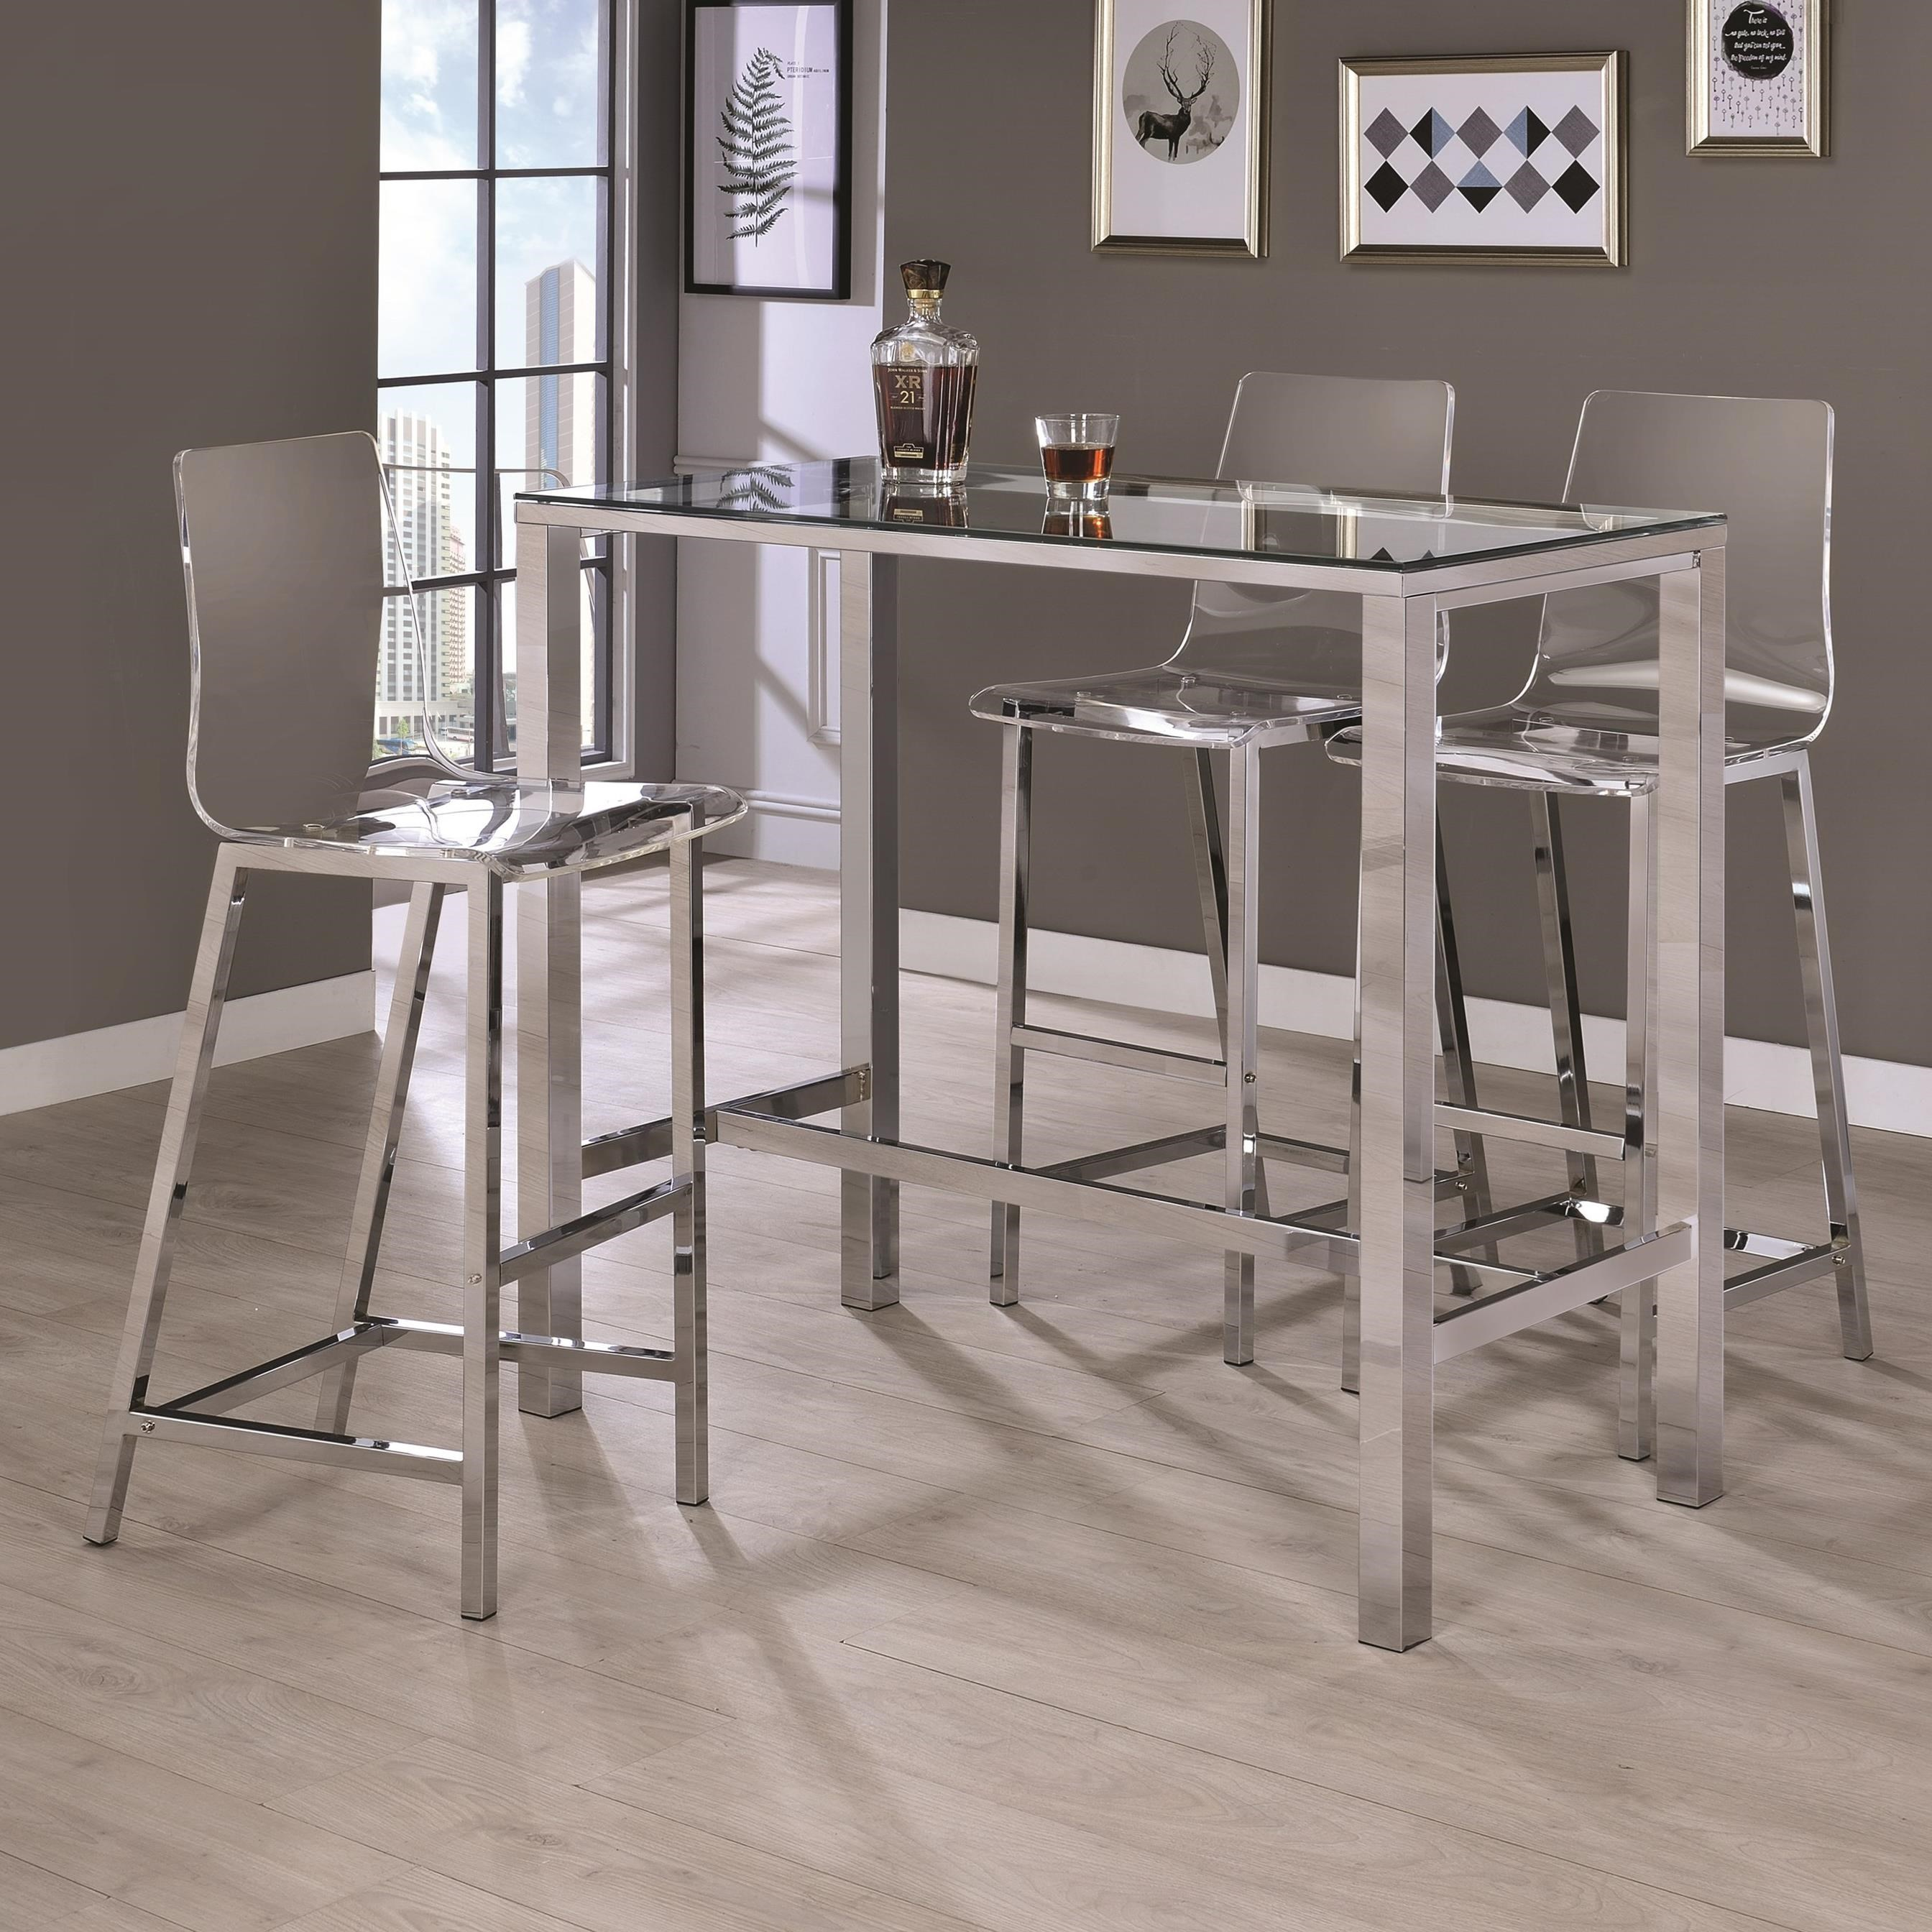 Bar Units and Bar Tables Bar Table and Stool Set by Coaster at Rife's Home Furniture